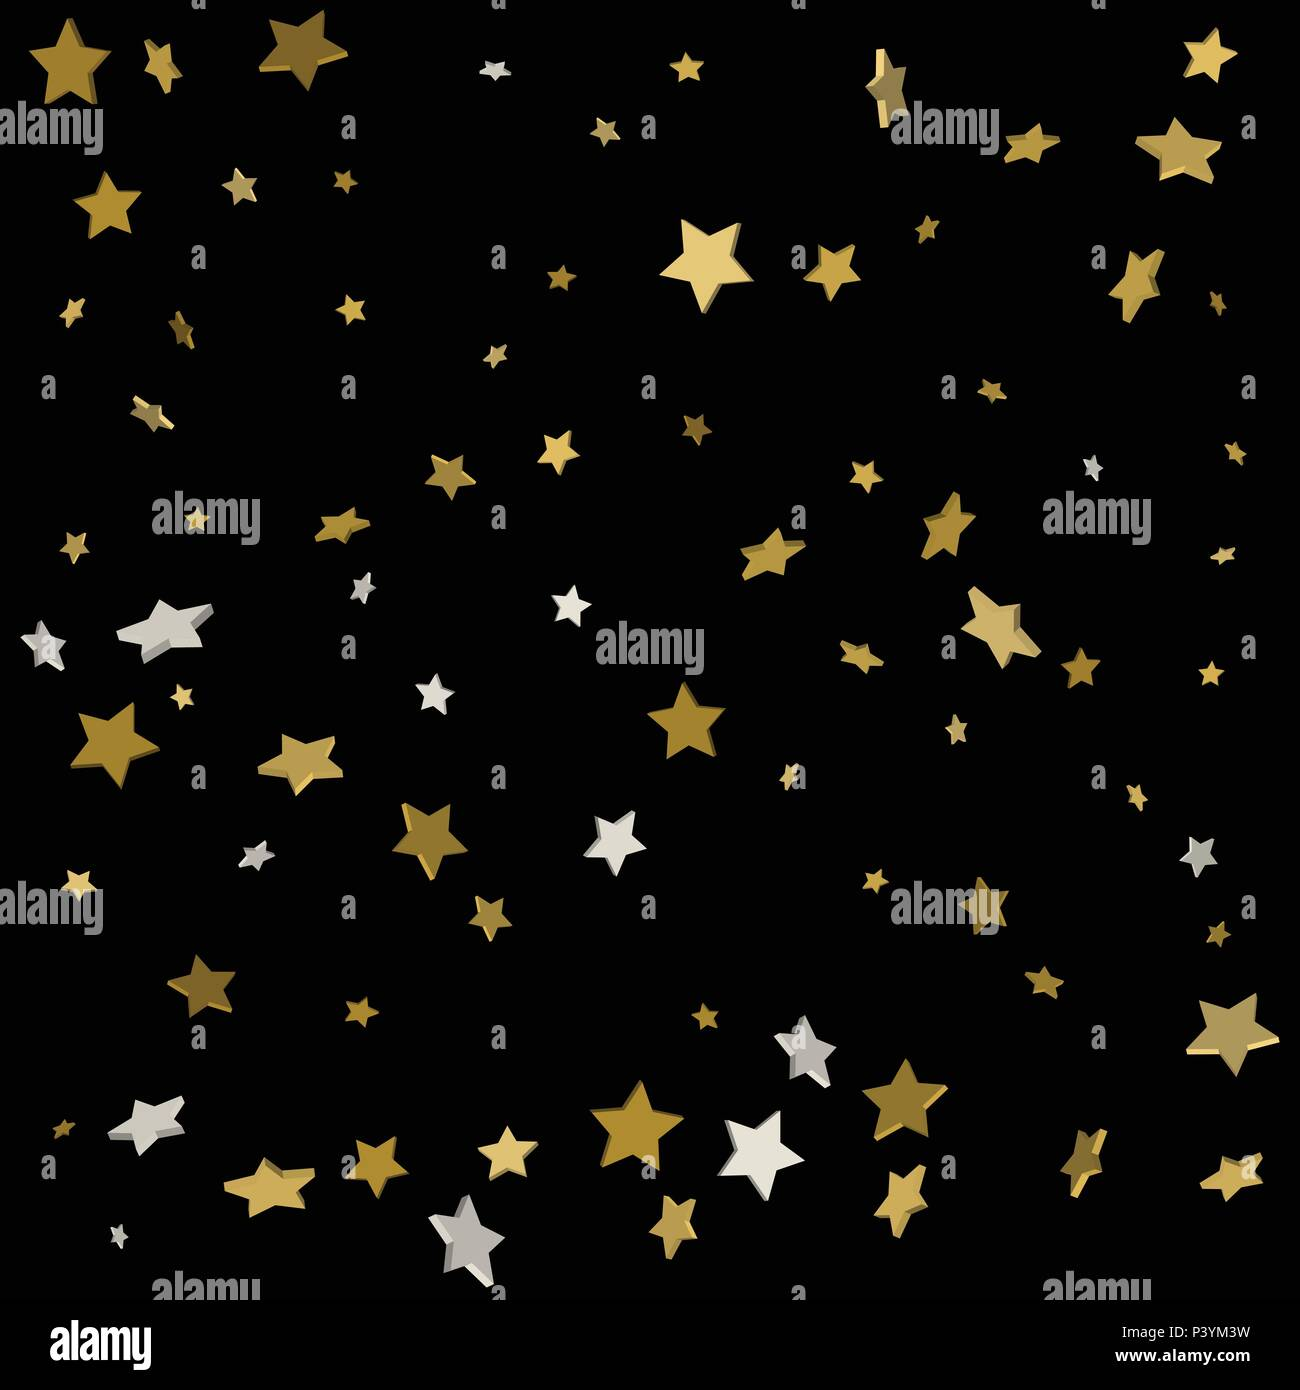 abstract pattern of random falling gold stars on black background glitter pattern for banner greeting card christmas and new year card invitation